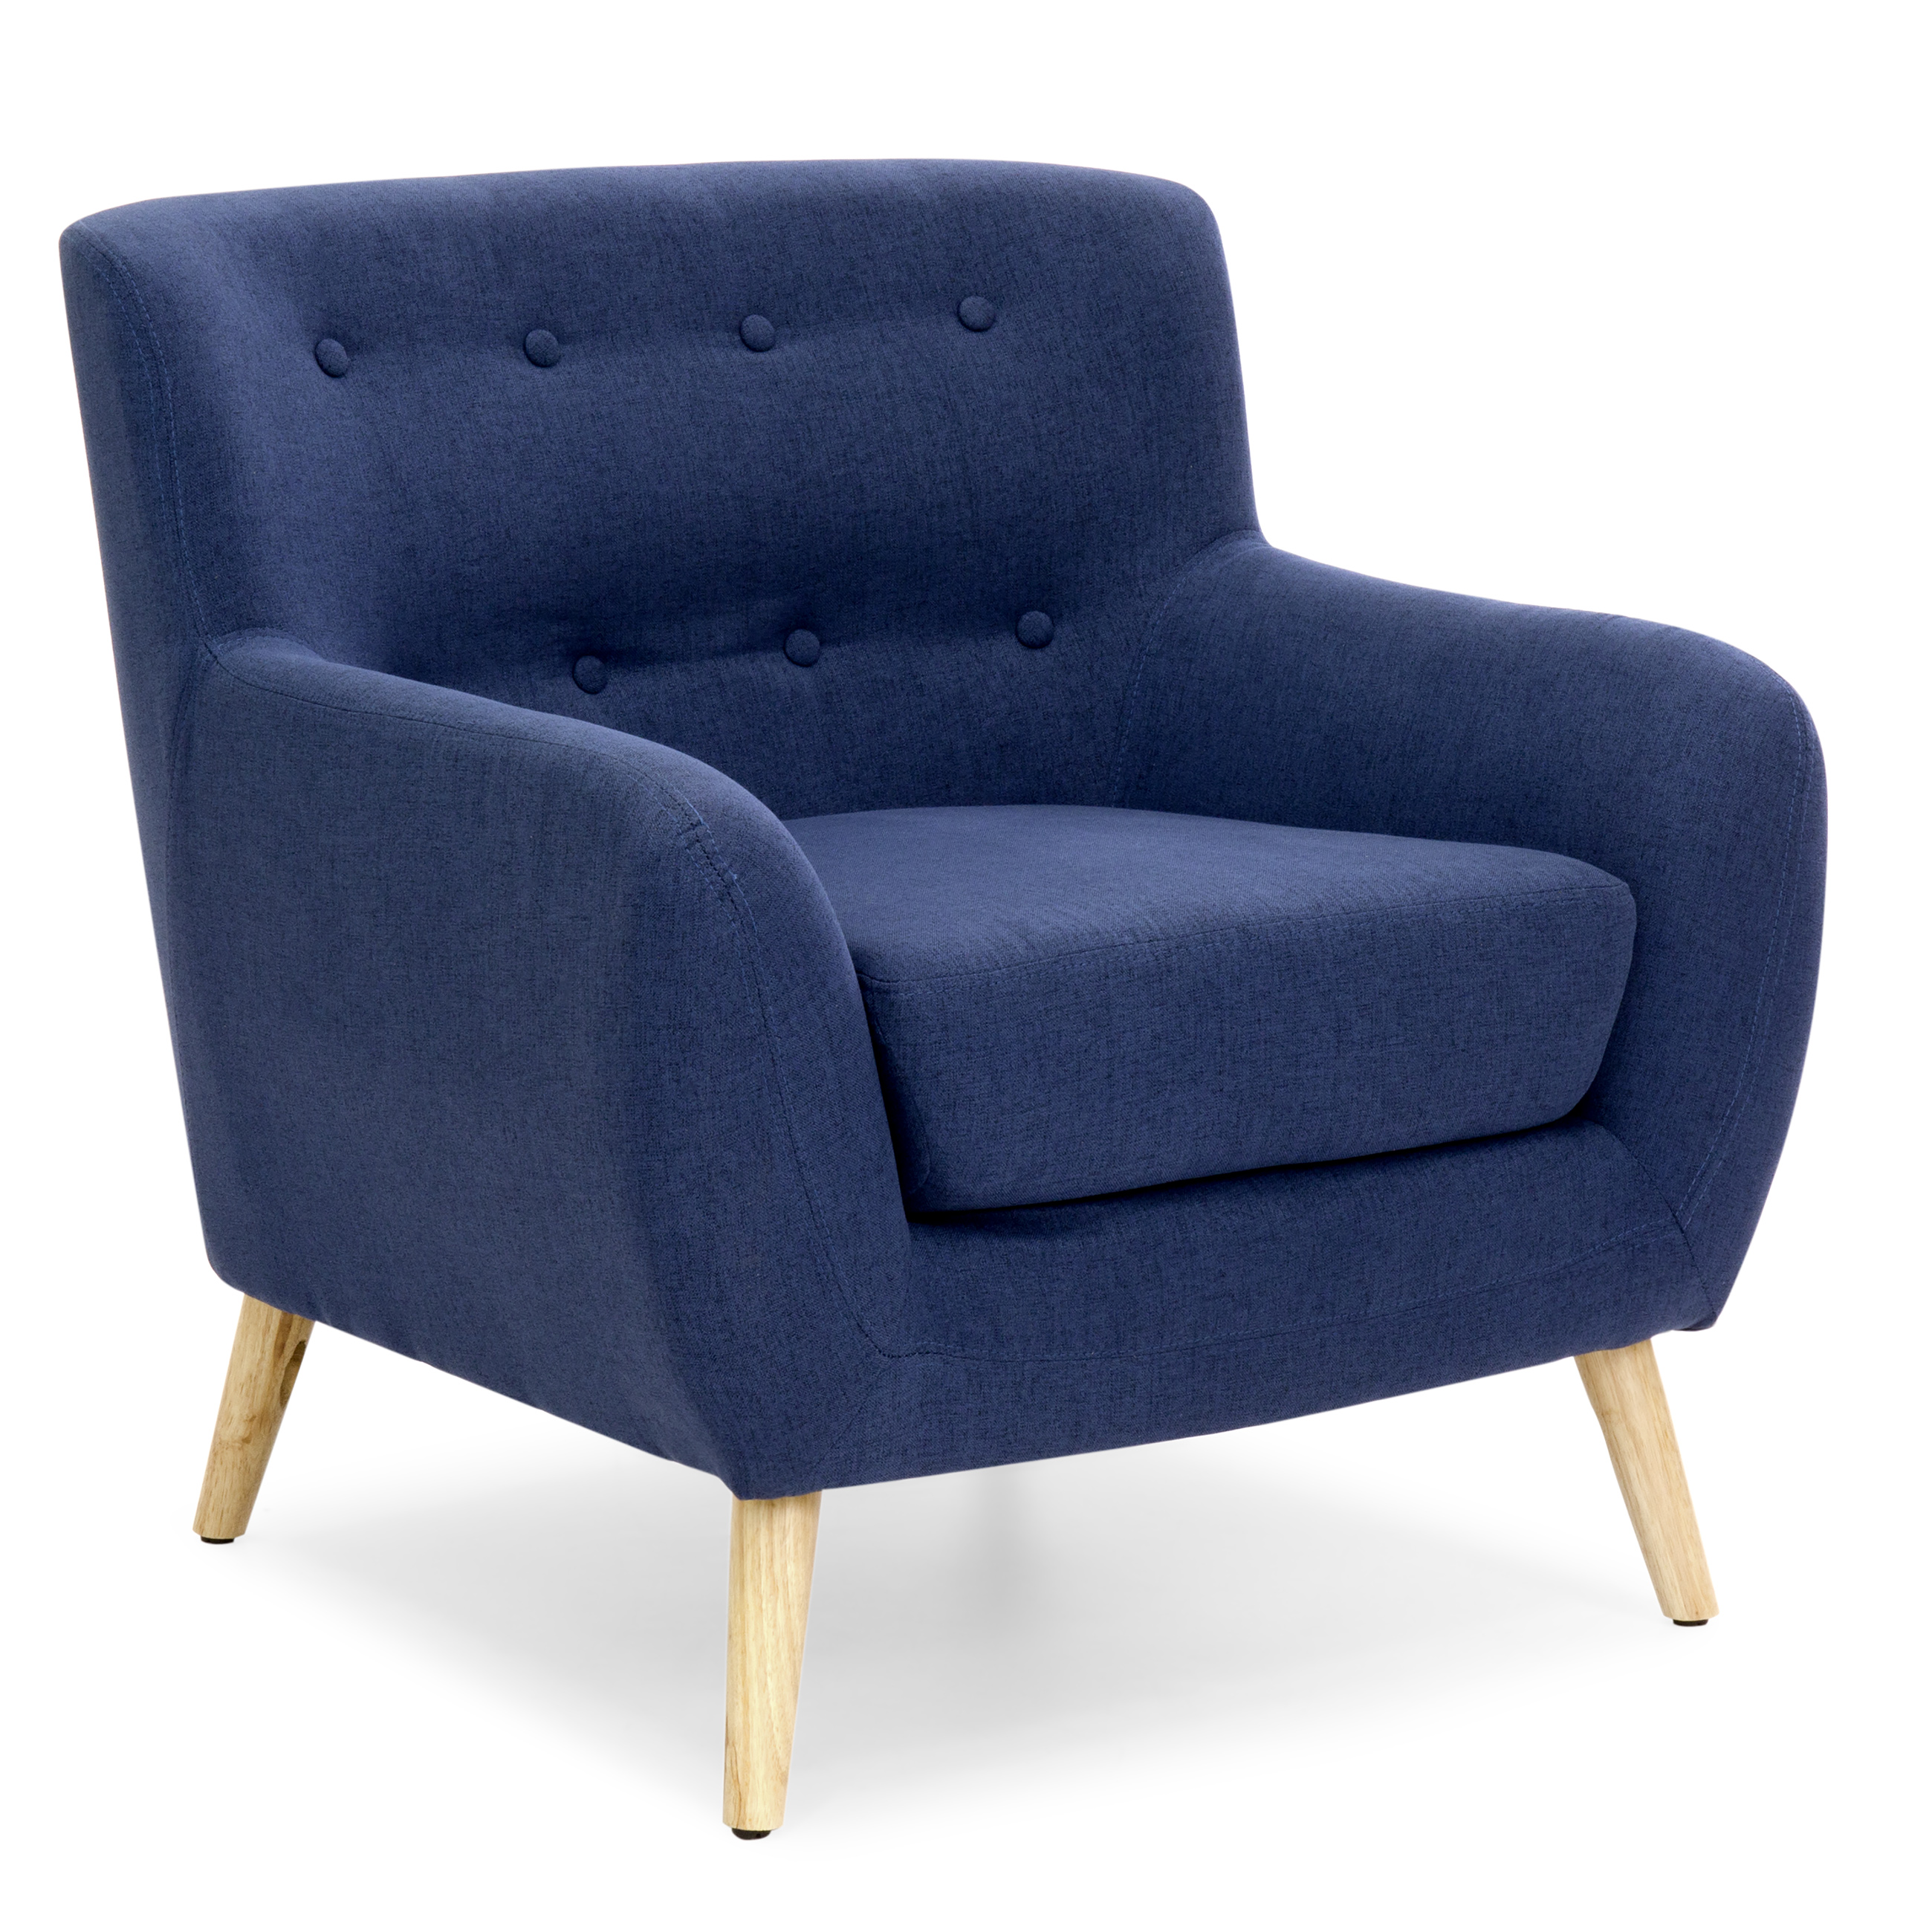 Best Choice Products Mid-Century Modern Upholstered Tufted Accent Chair (Dark Blue) by Best Choice Products